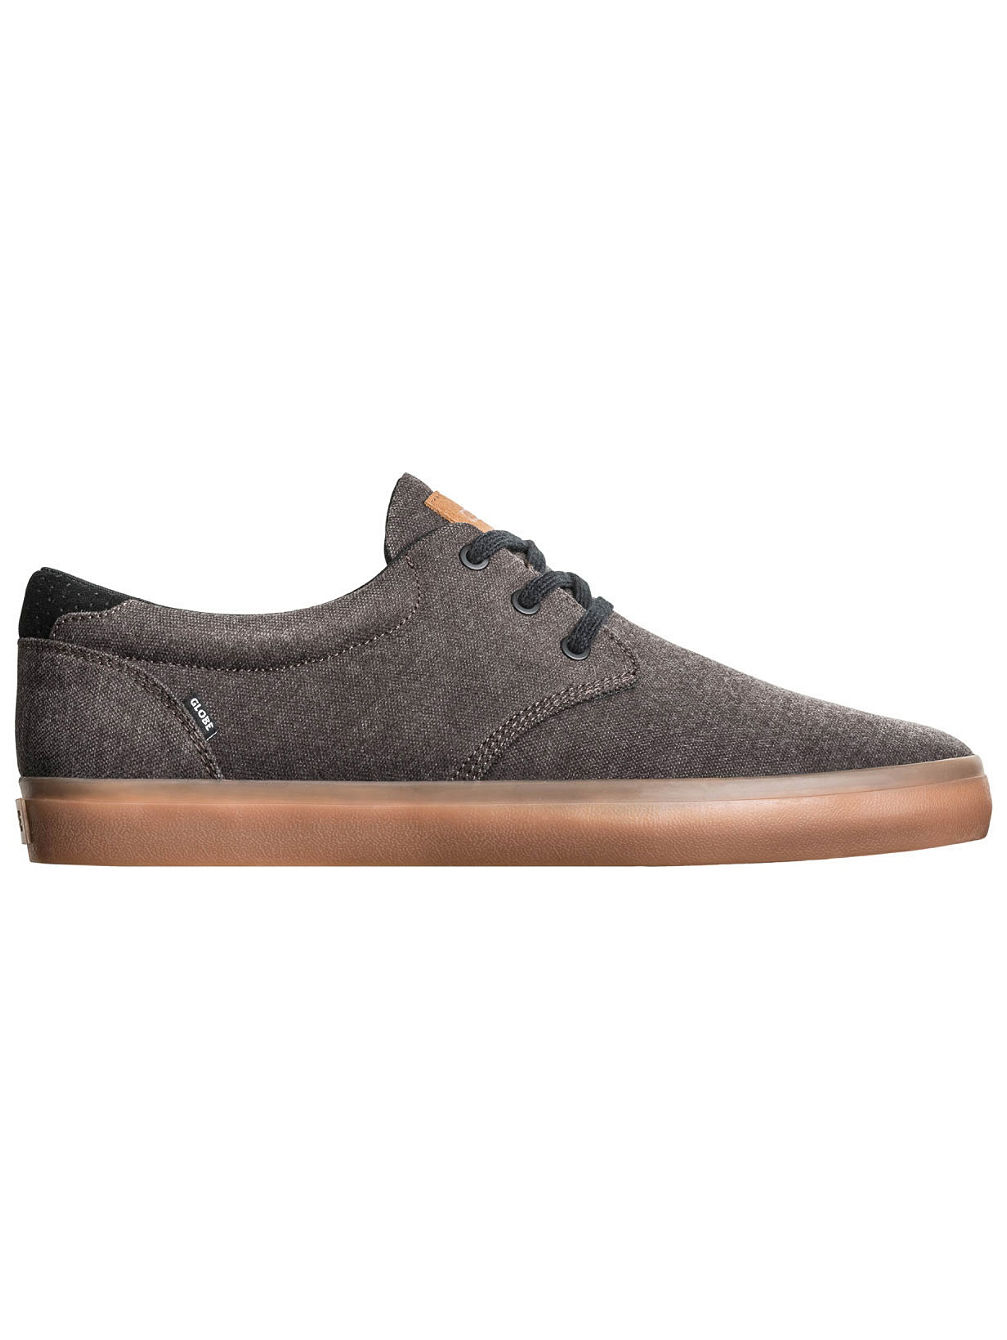 Willow Skate Shoes